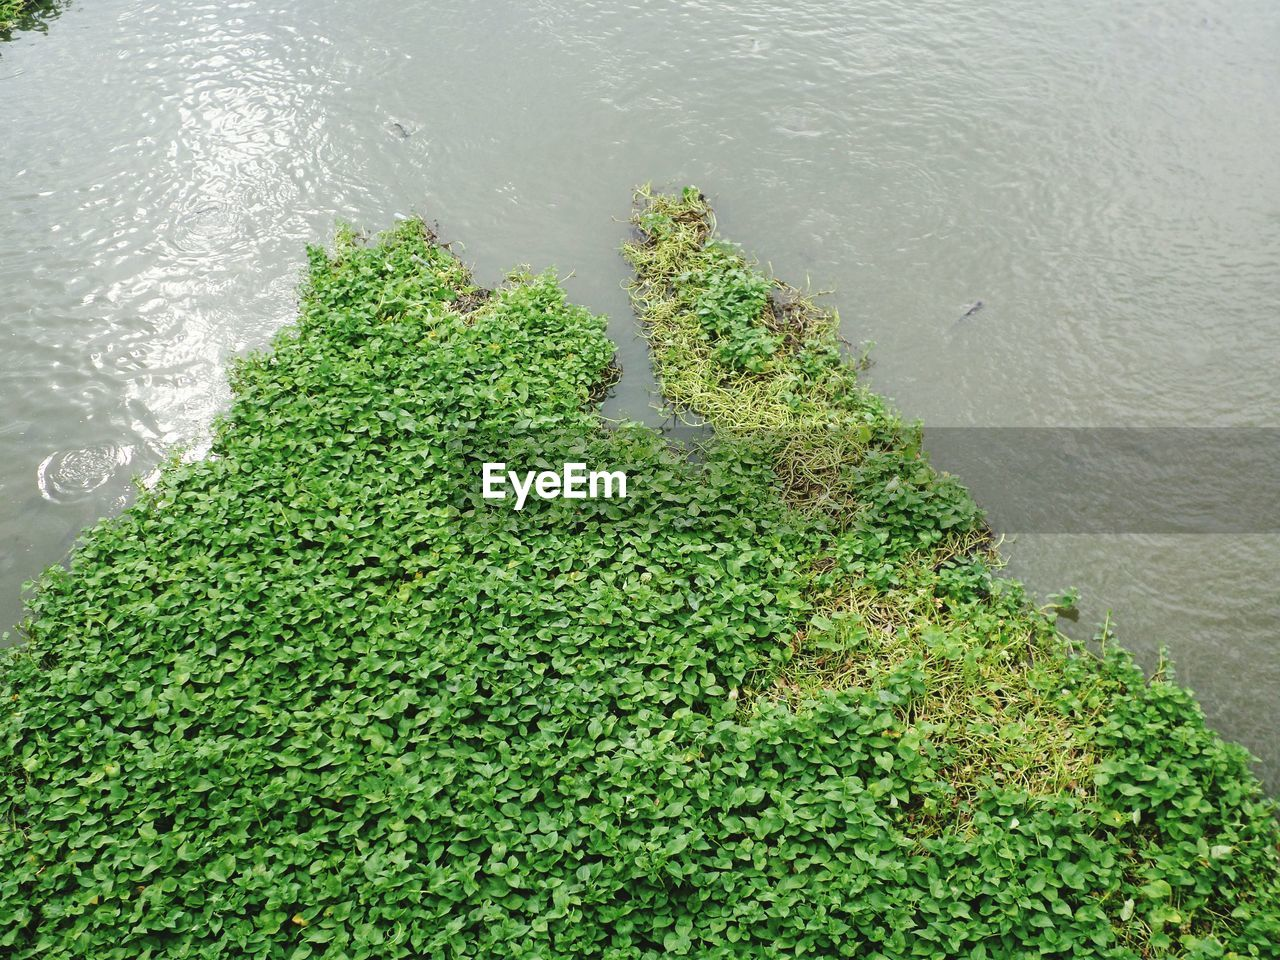 HIGH ANGLE VIEW OF FRESH PLANTS IN LAKE